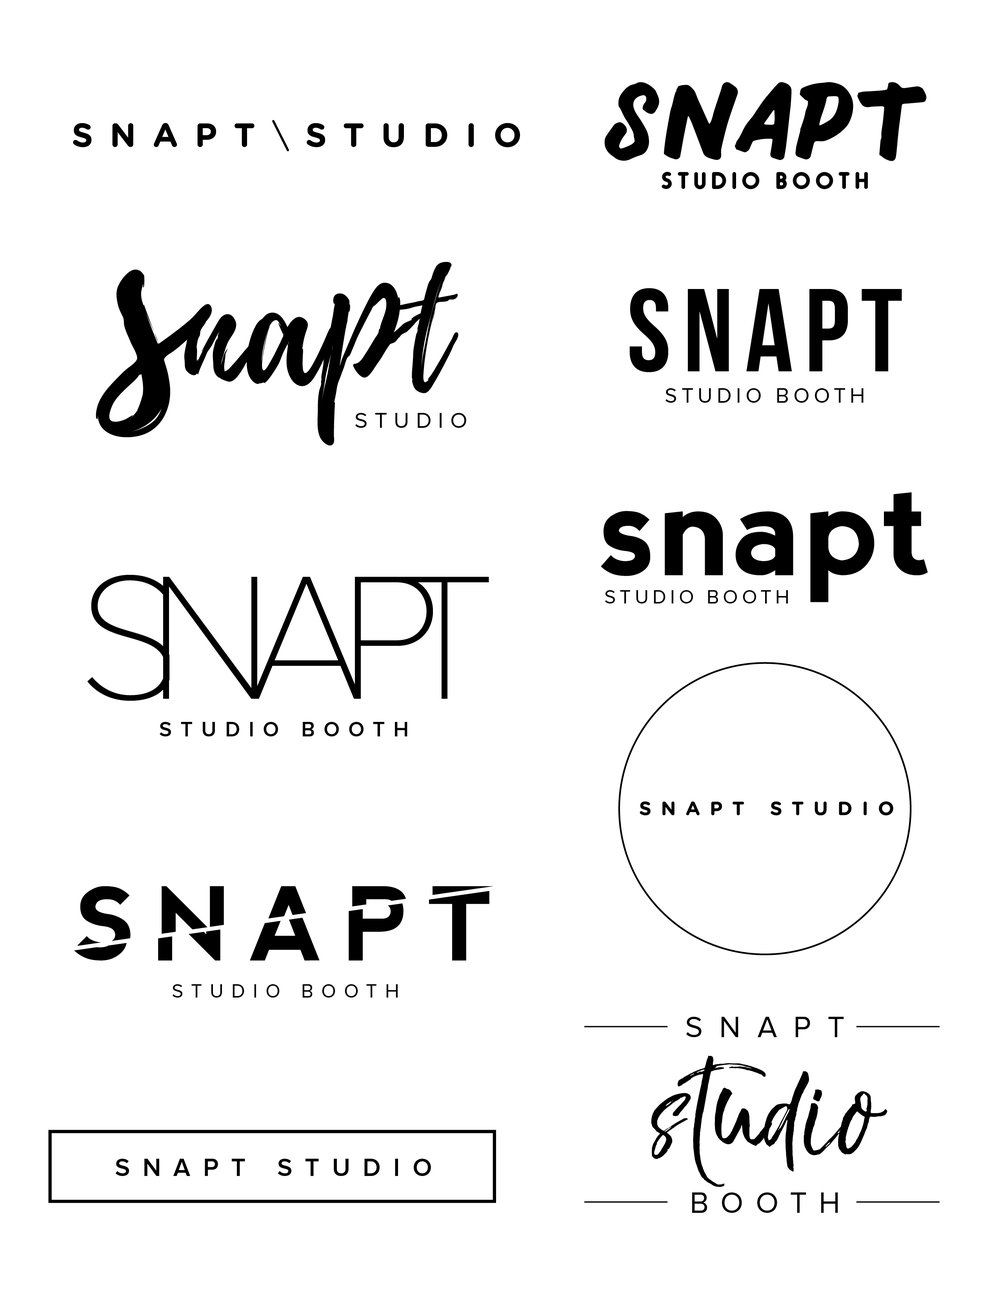 Logo exploration for Snapt Studio photobooth